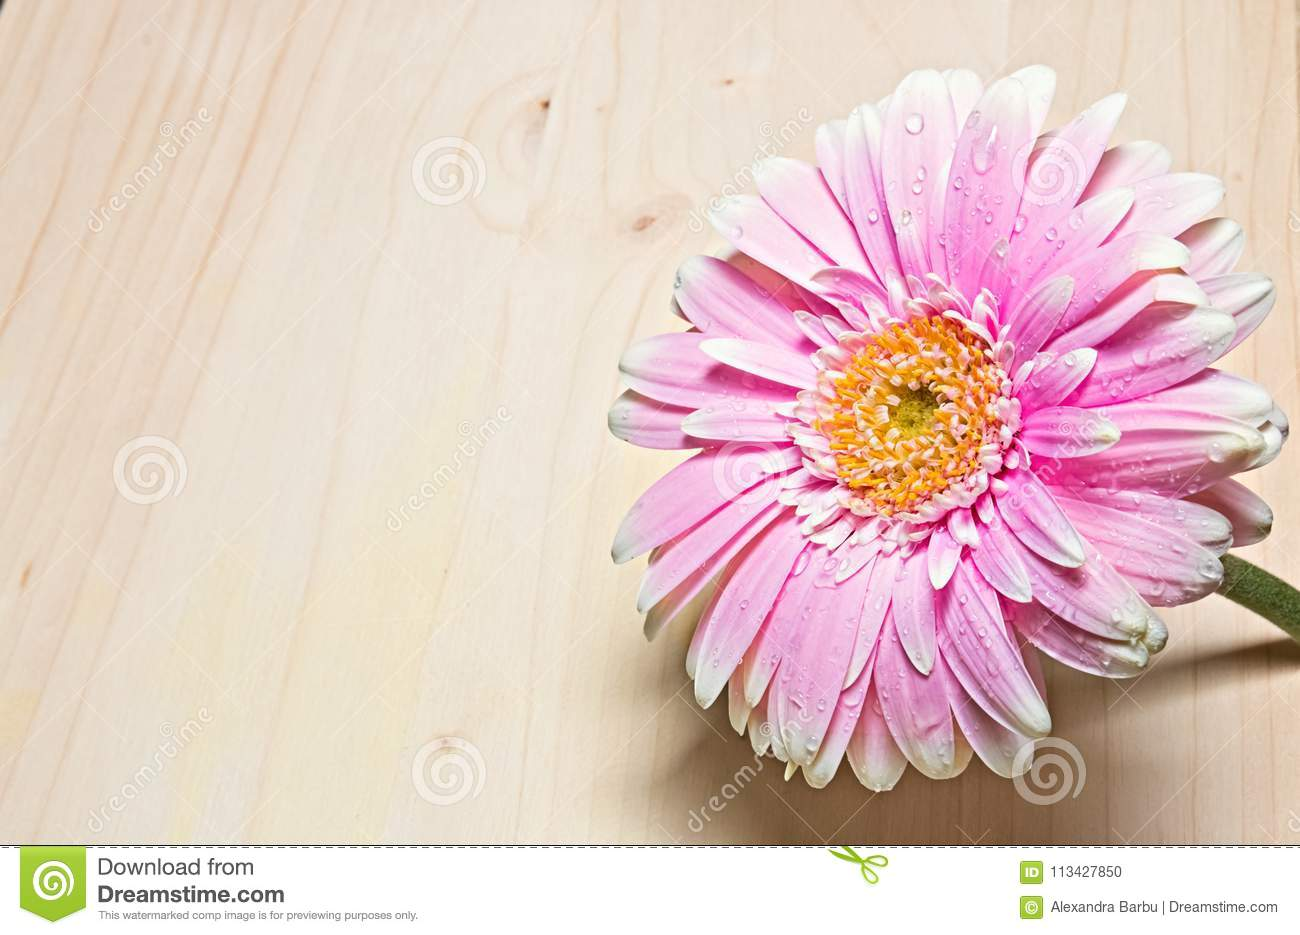 Pink and white gerbera flower close up on wood background stock download comp mightylinksfo